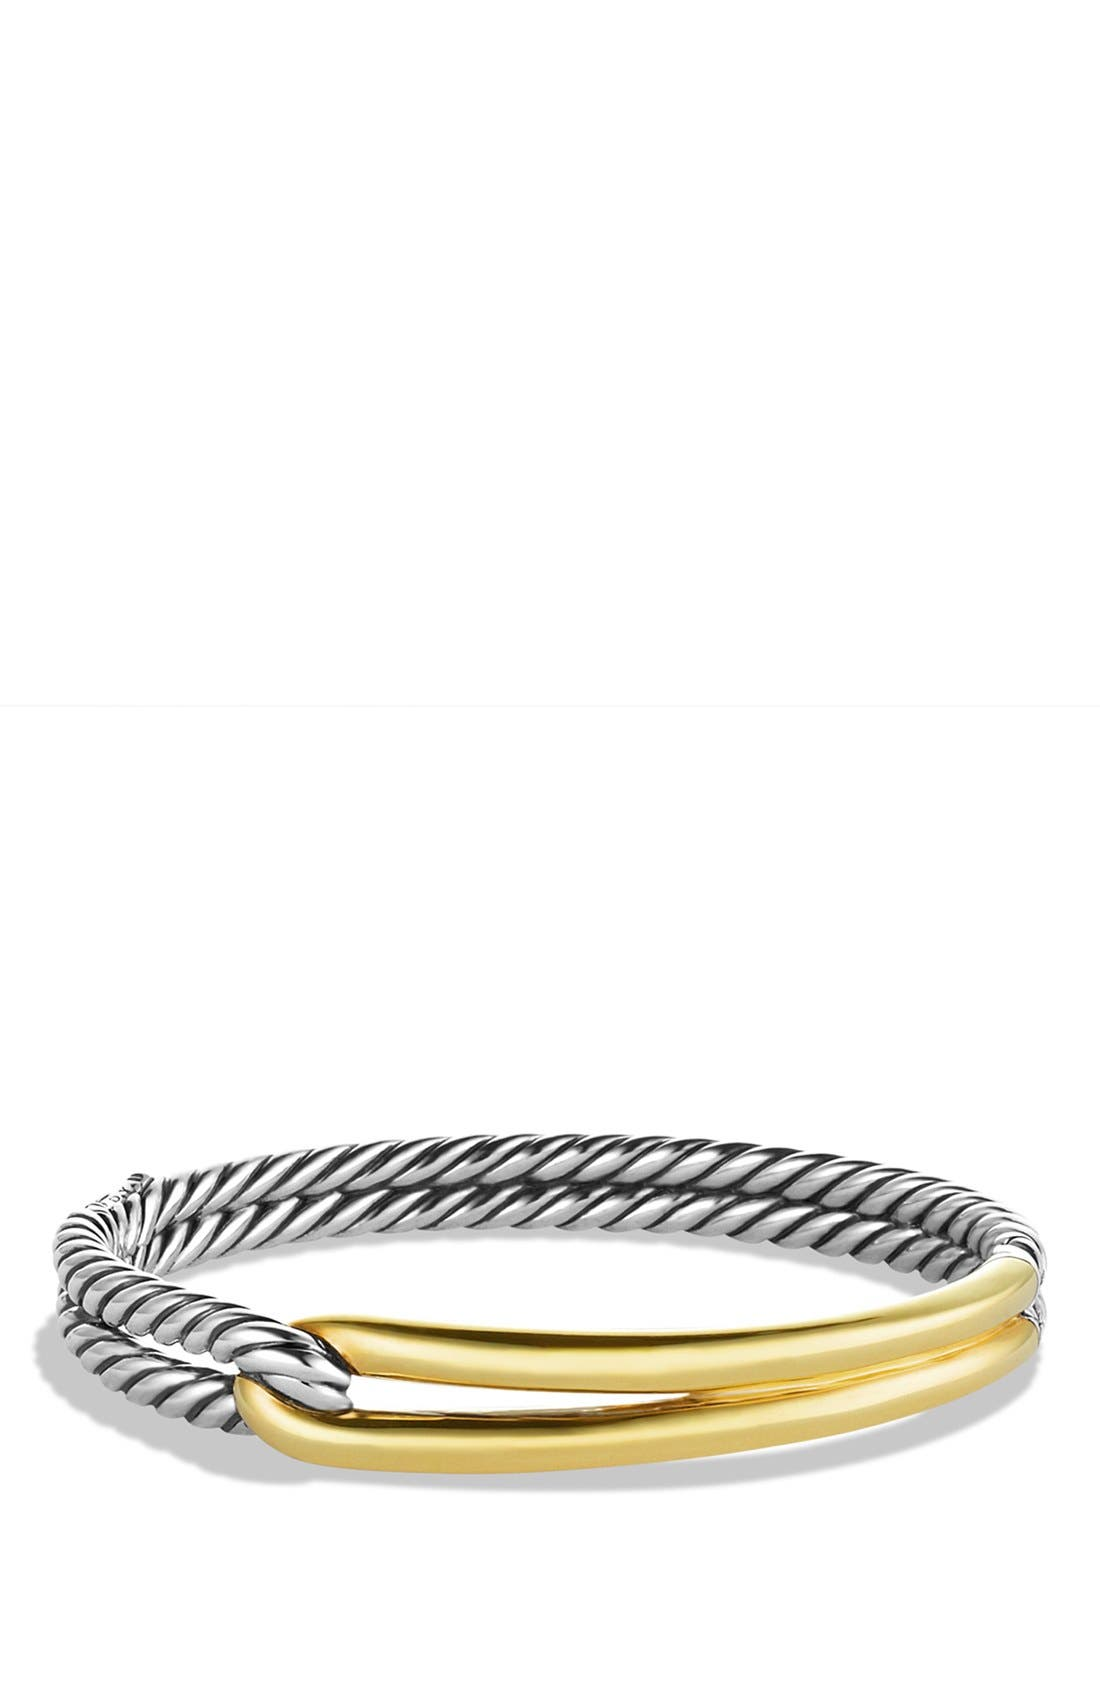 Main Image - David Yurman 'Labyrinth' Single-Loop Bracelet with Gold